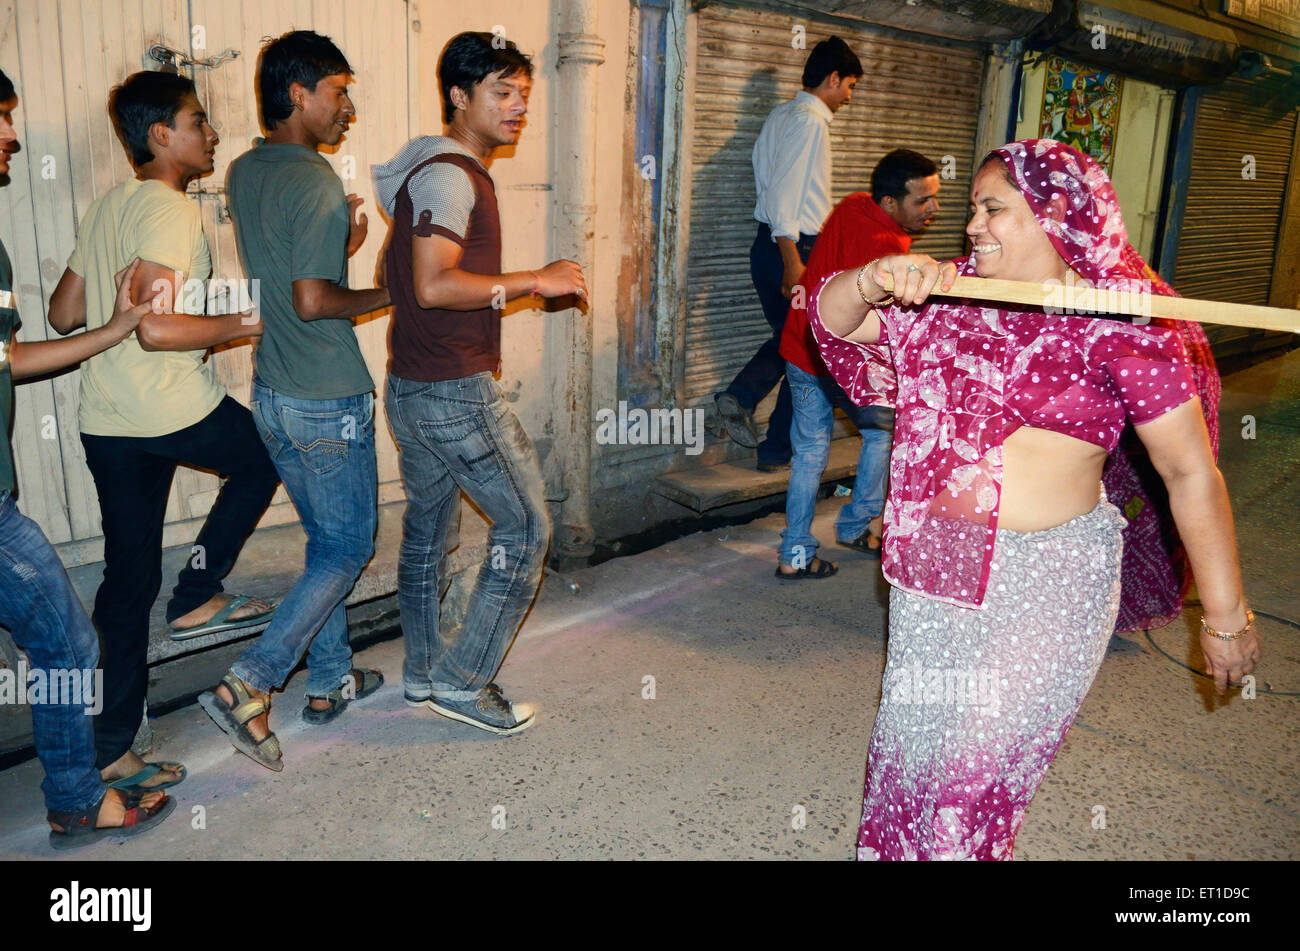 A  woman beating lightly boys with stick  on occasion of Dheenga Gavar festival Jodhpur Rajasthan India NO MR - Stock Image